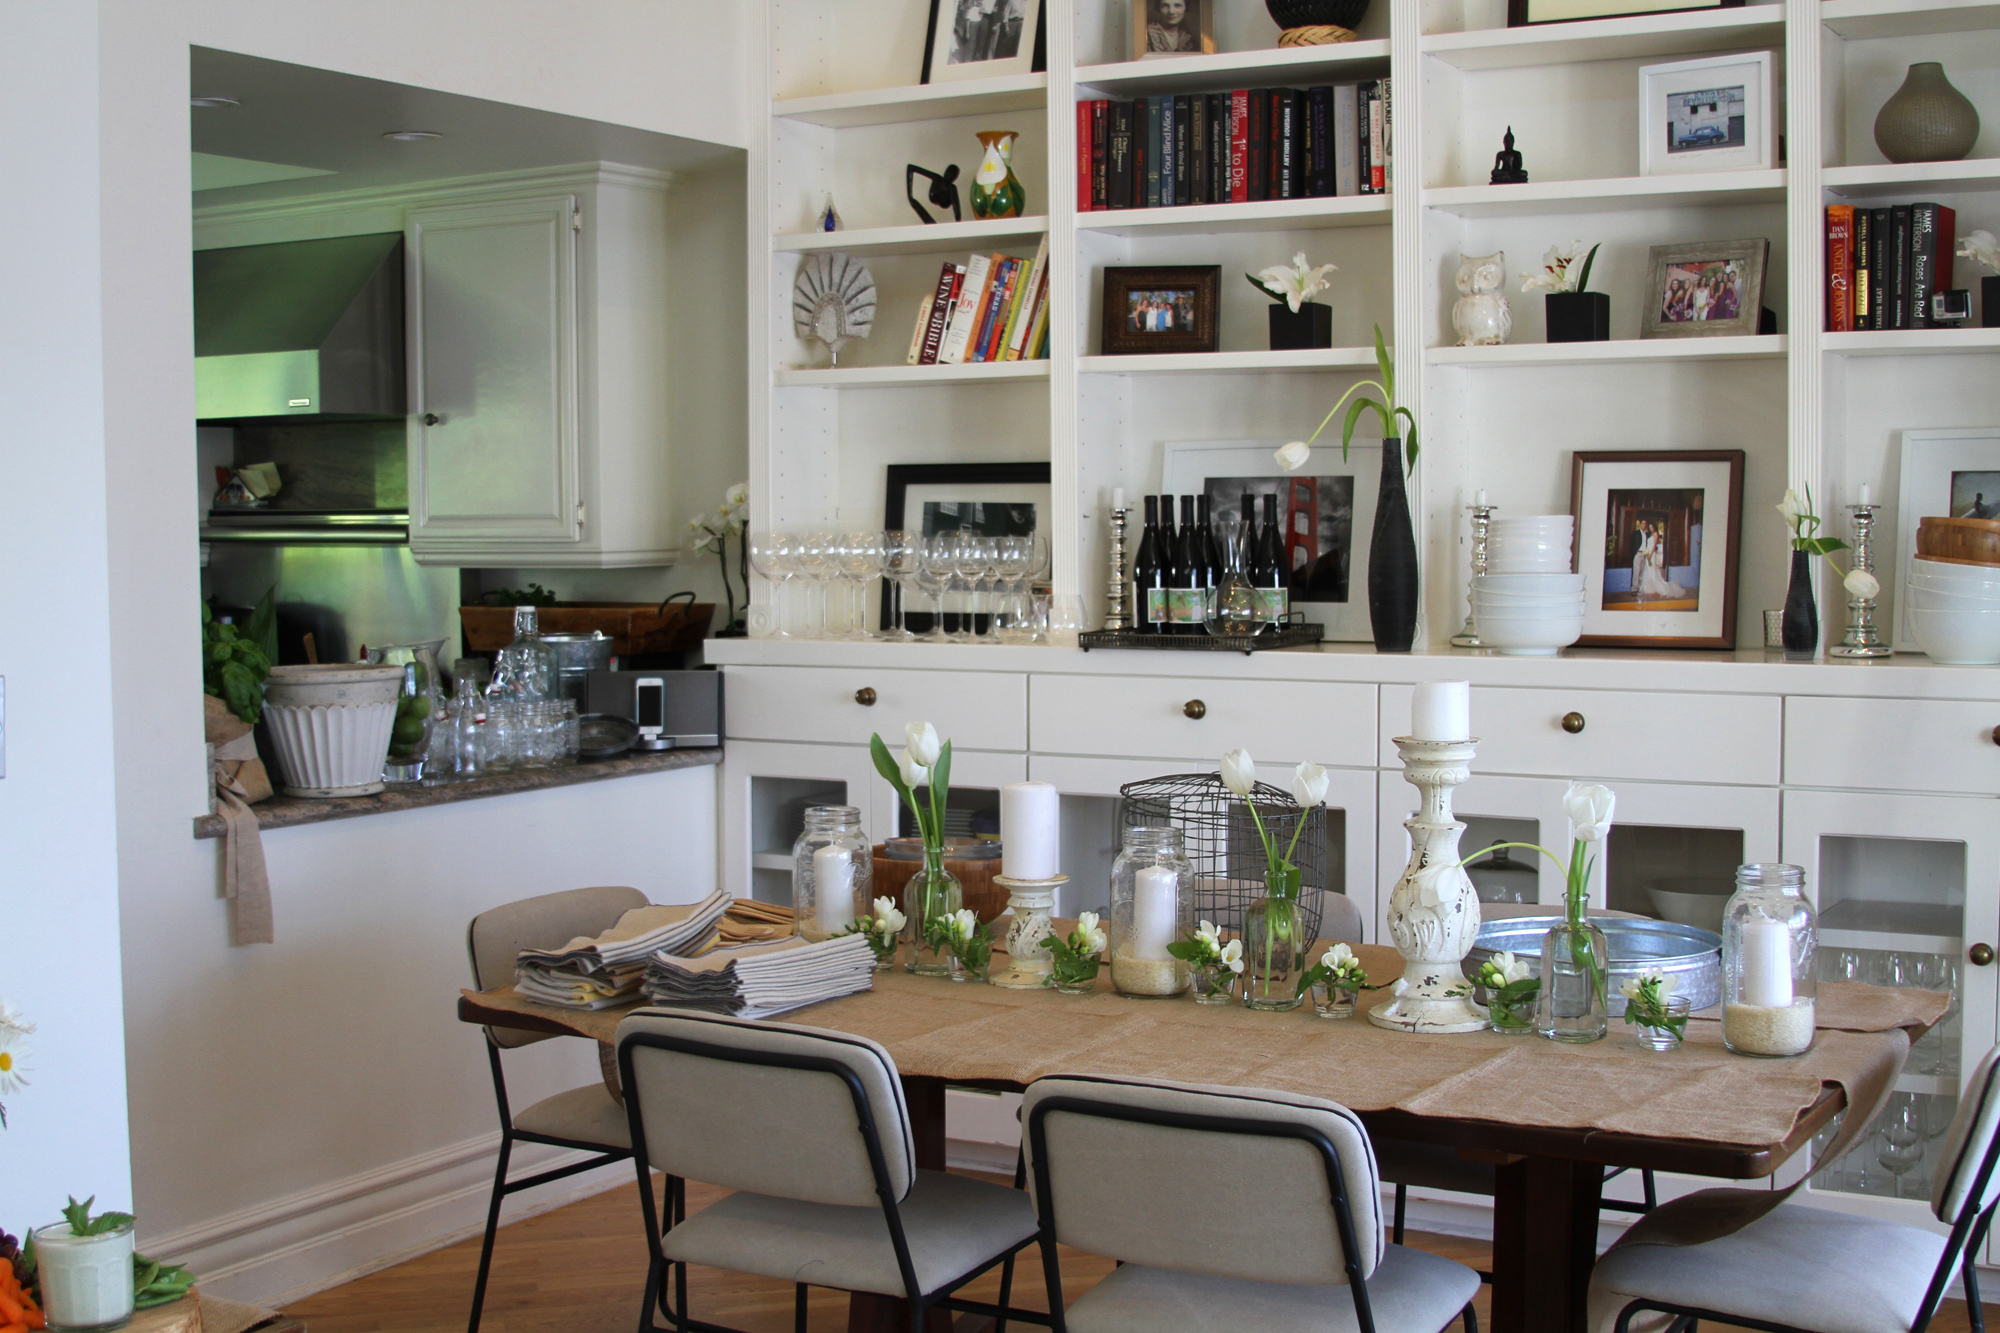 5a-after-dining-space-.jpg